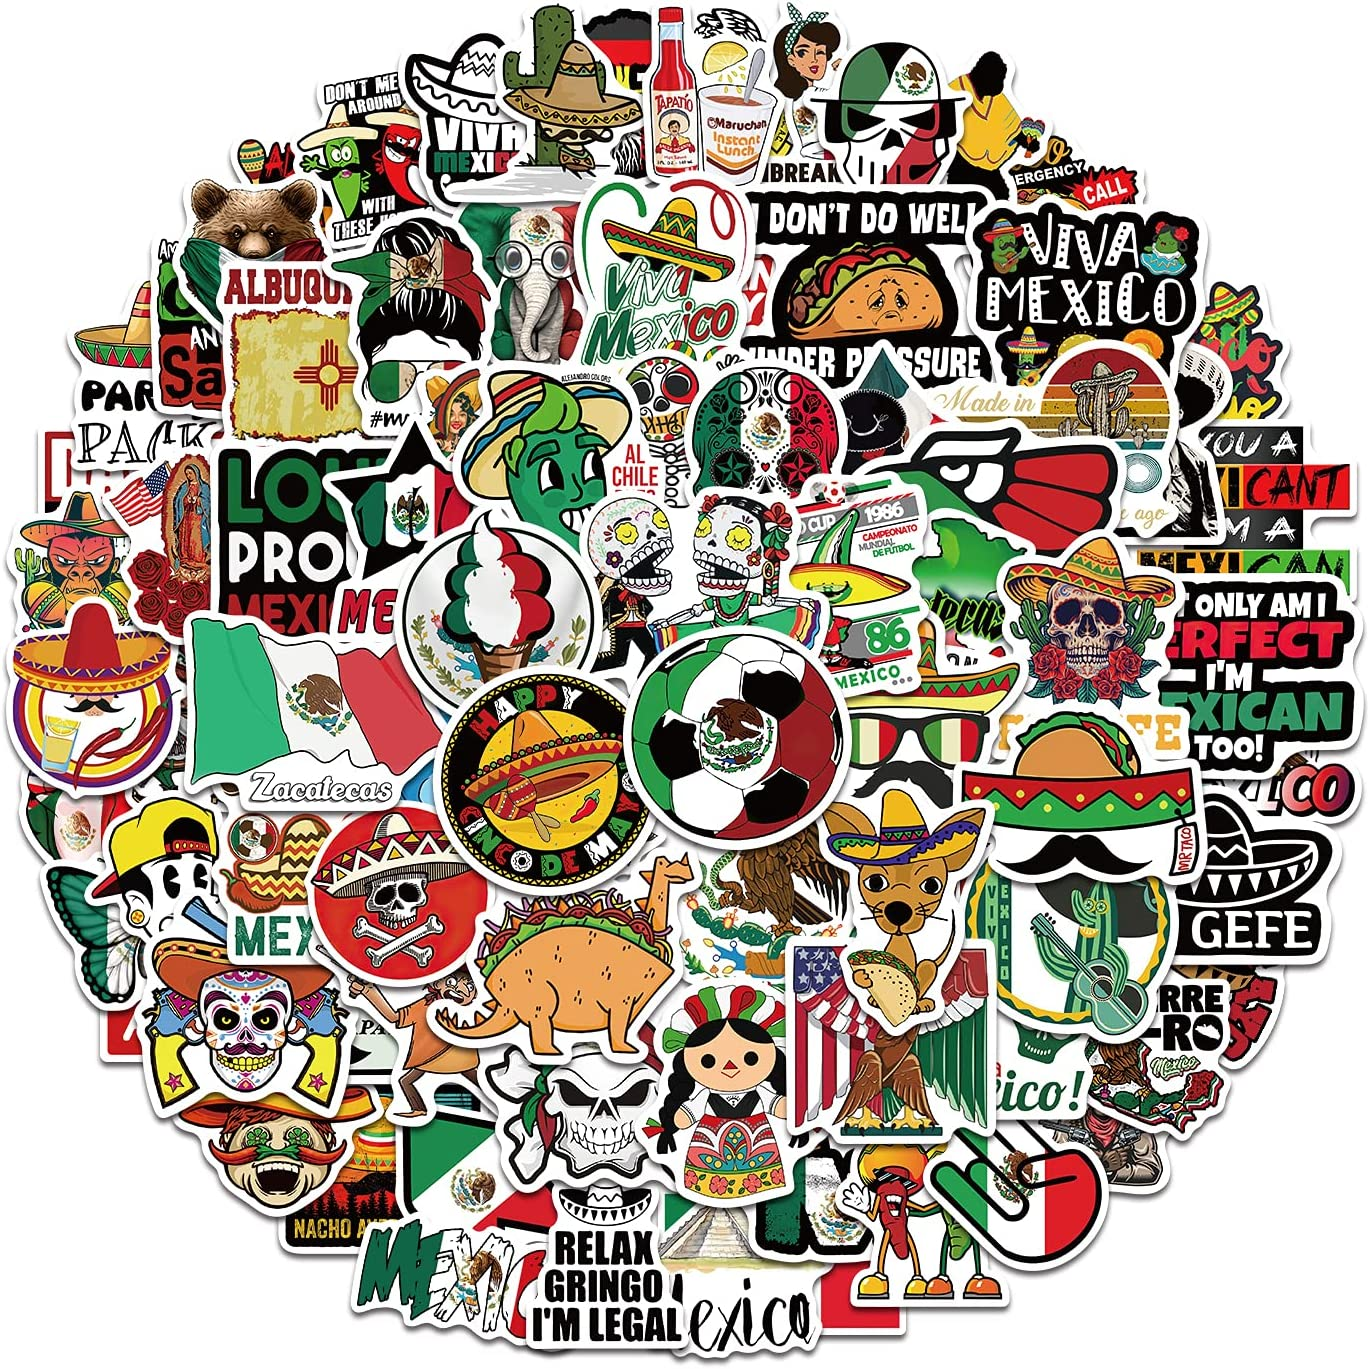 Mexican Stickers 100pcs Vinyl Waterproof Mexico Stickers Decals for Teens Adults Laptop Bumper Water Bottles Computer Phone Guitar Luggage